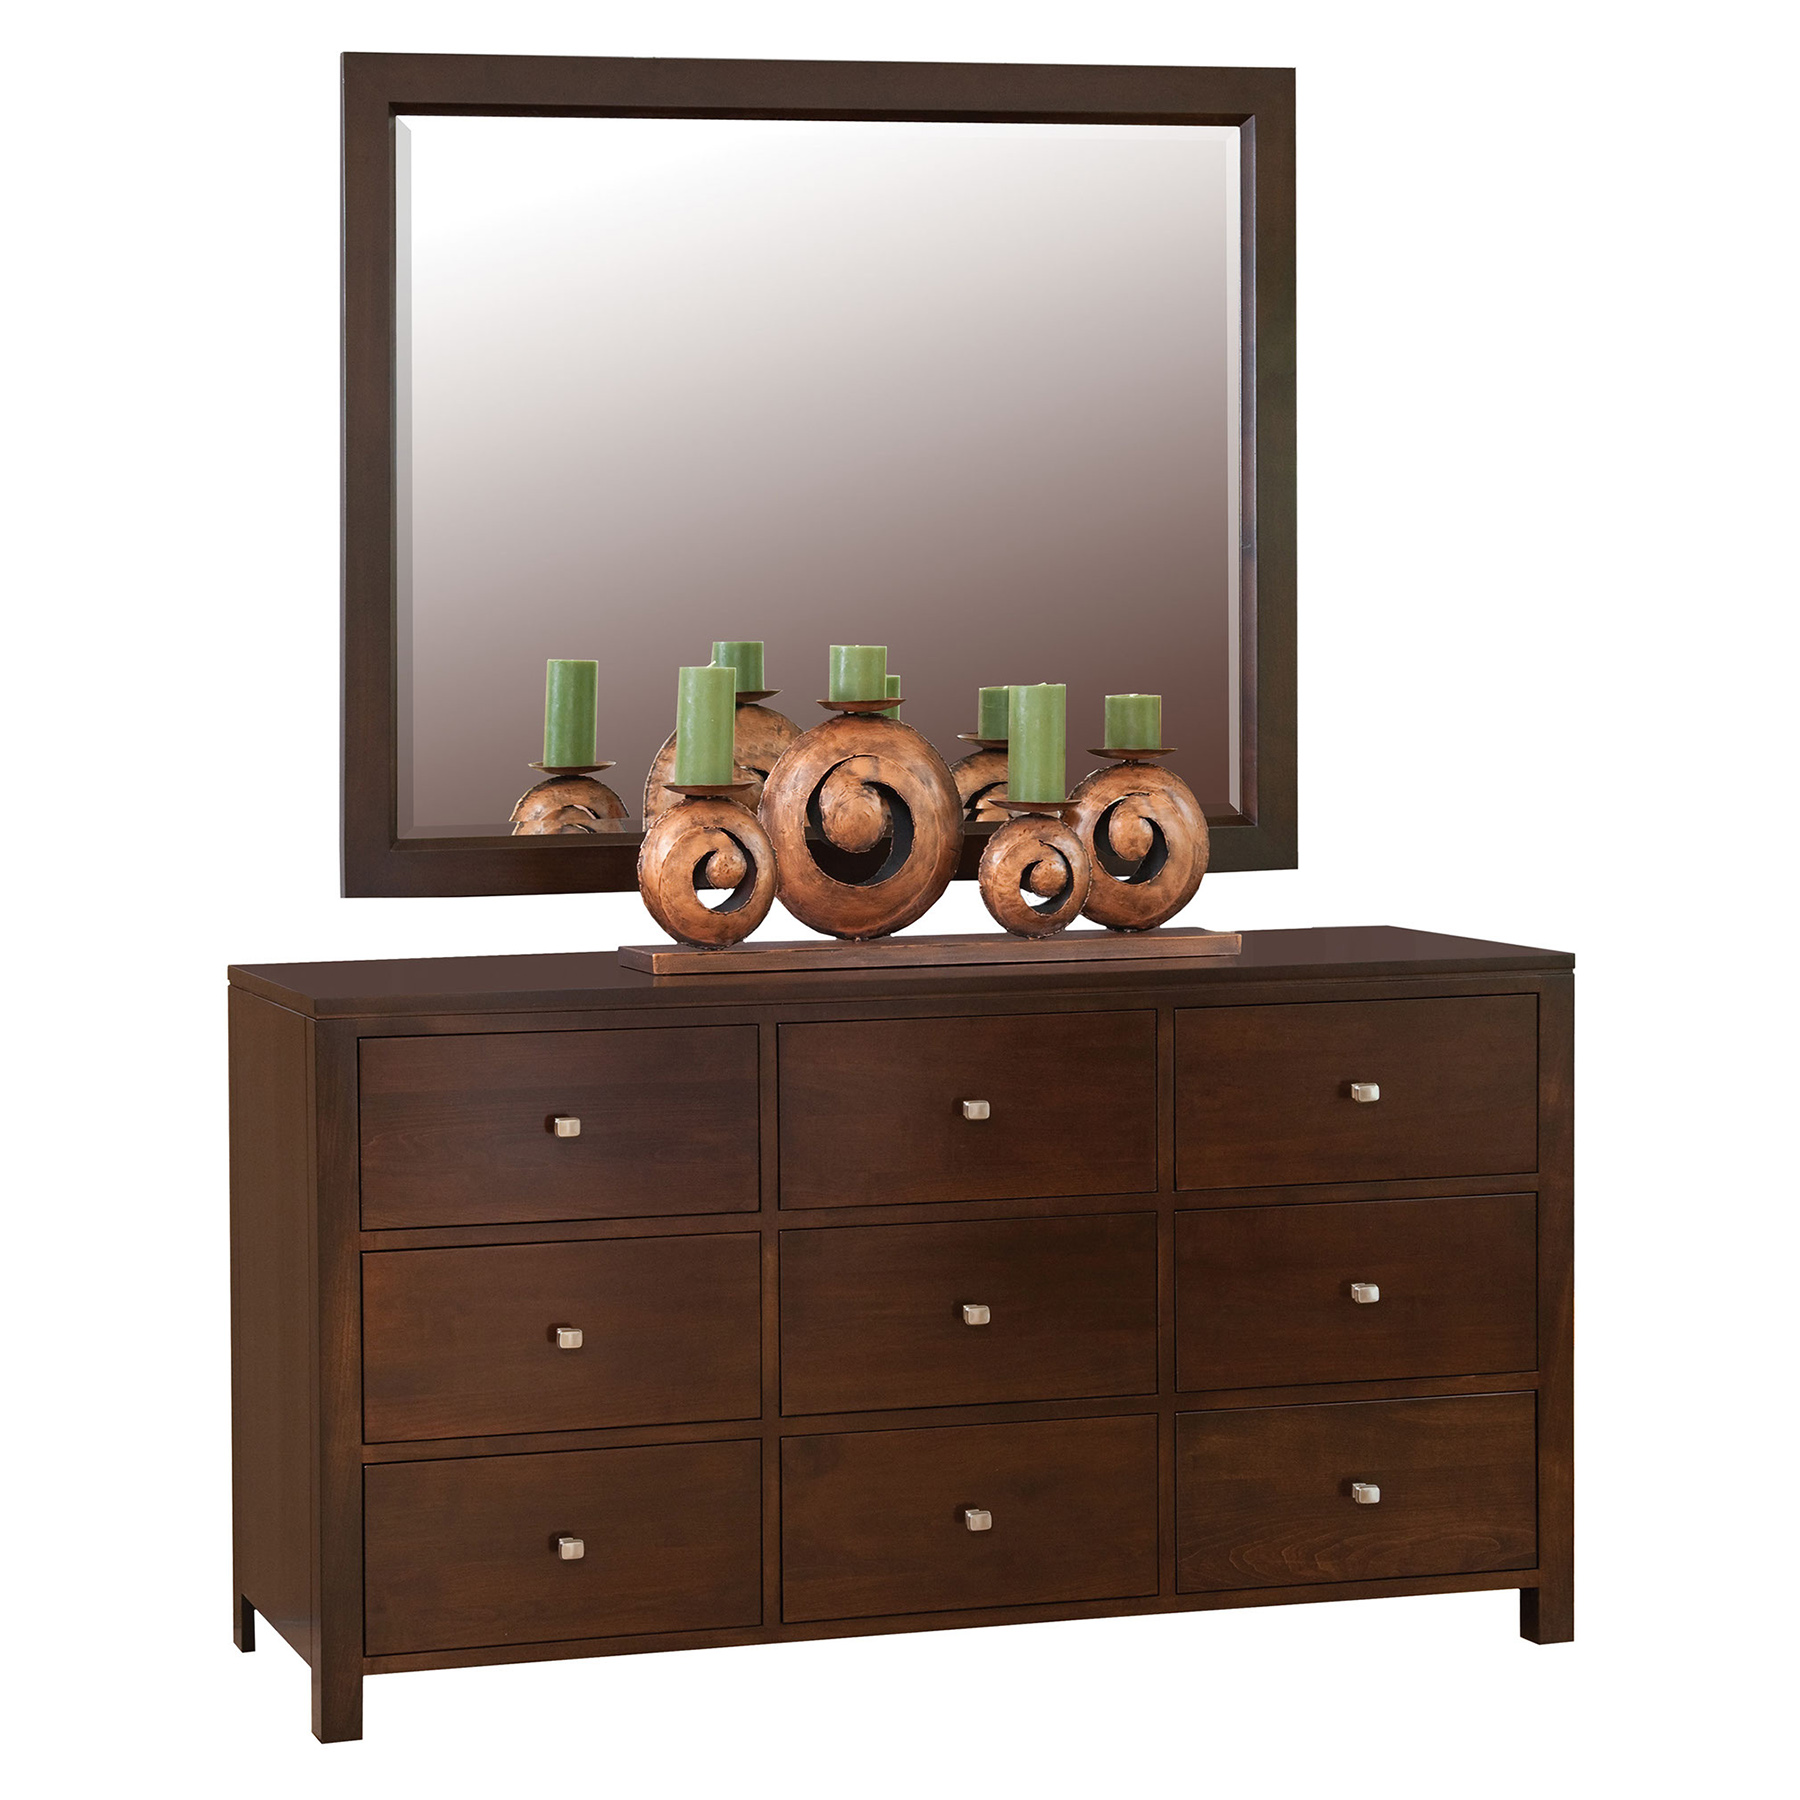 Dresser & Wall Mirror Beveled